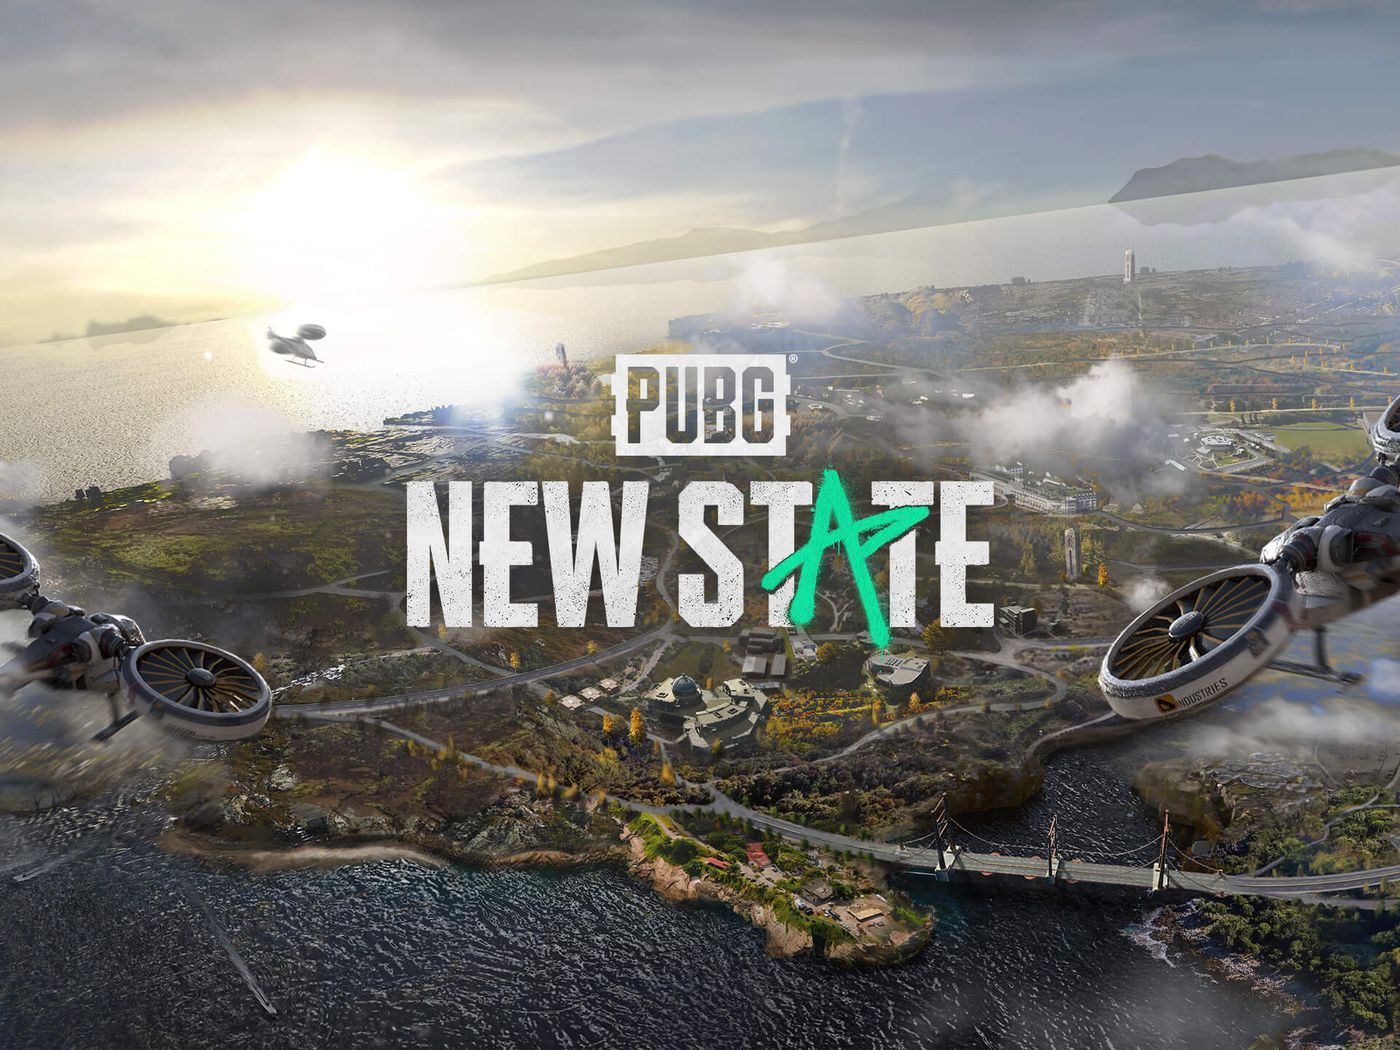 PUBG New State is a futuristic new battle royale game for Android 1400x1050